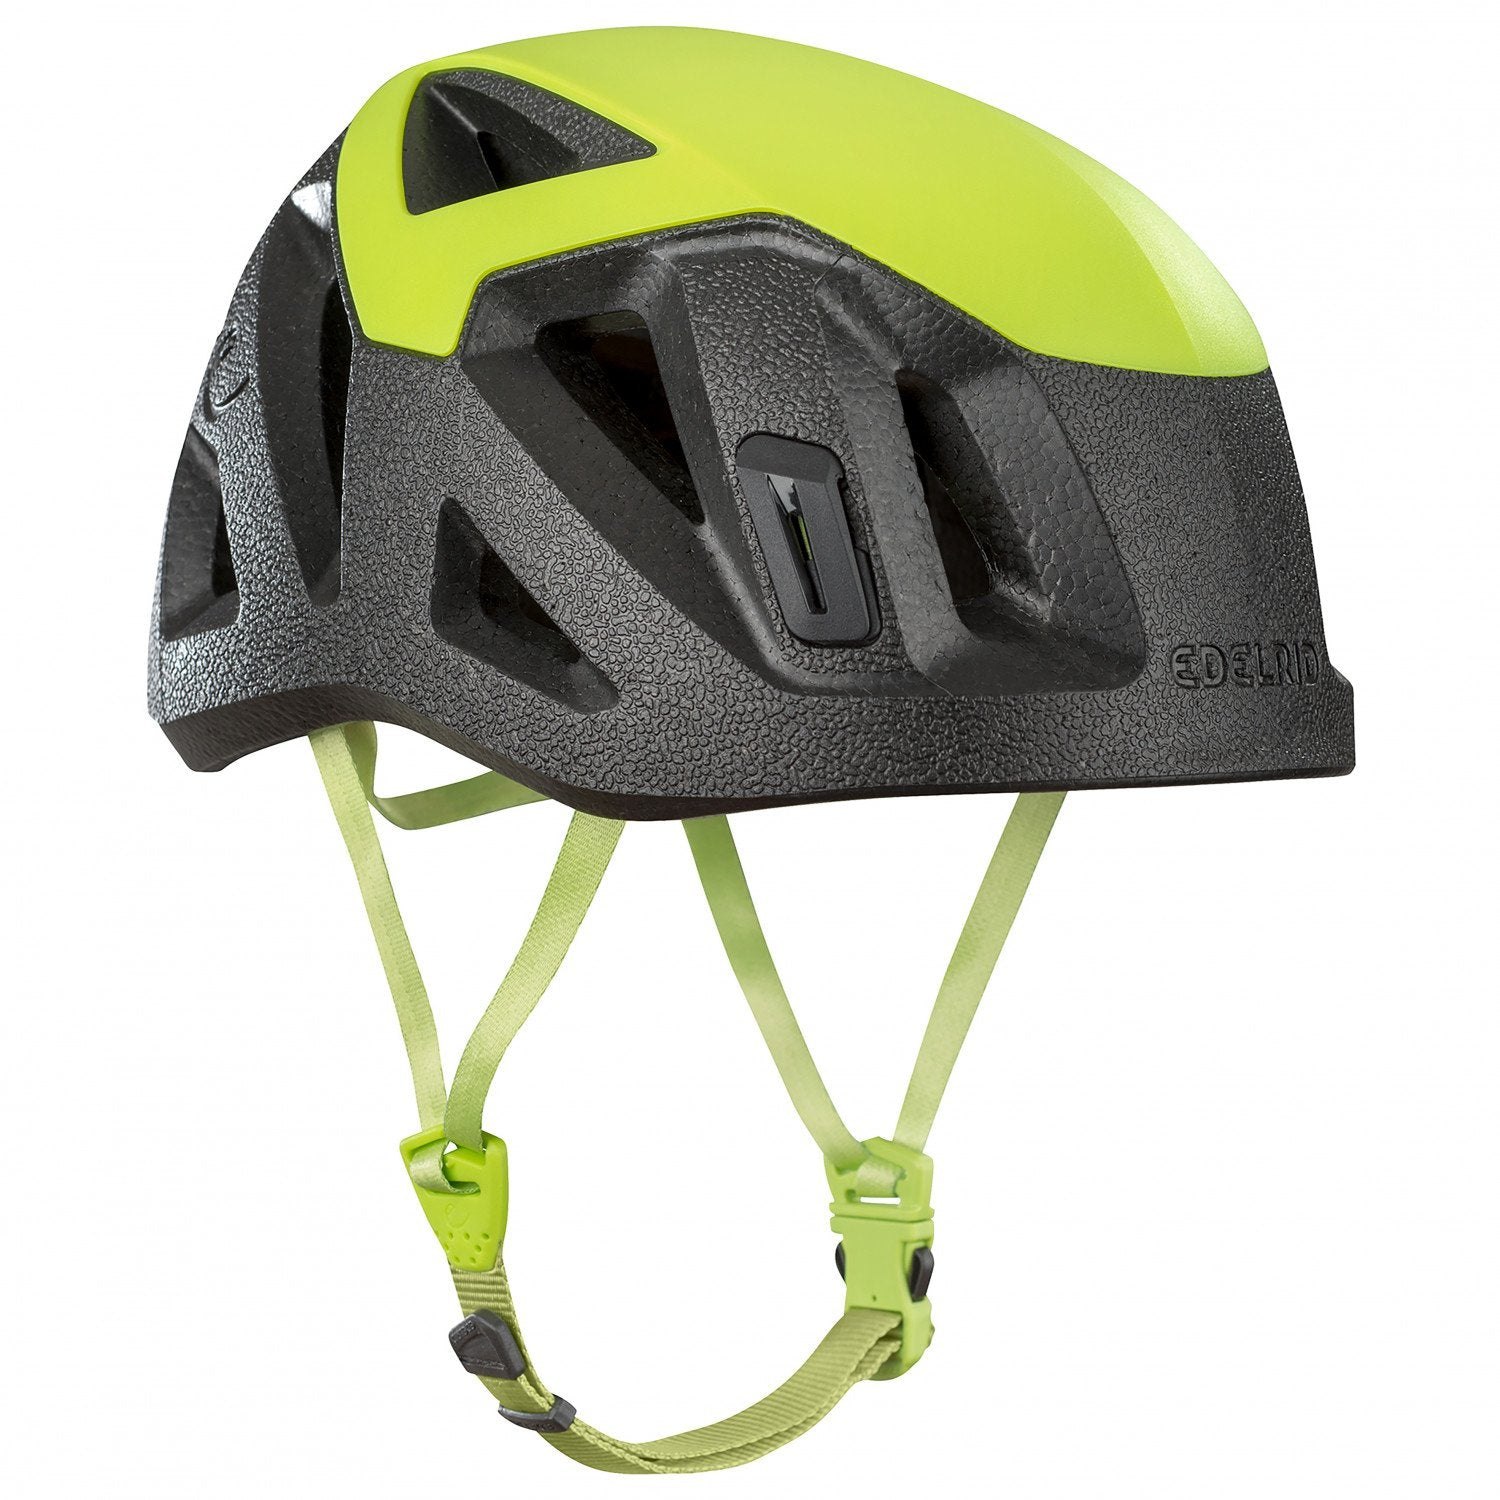 Side of Edelrid Salathe Helmet in Black & Green colours